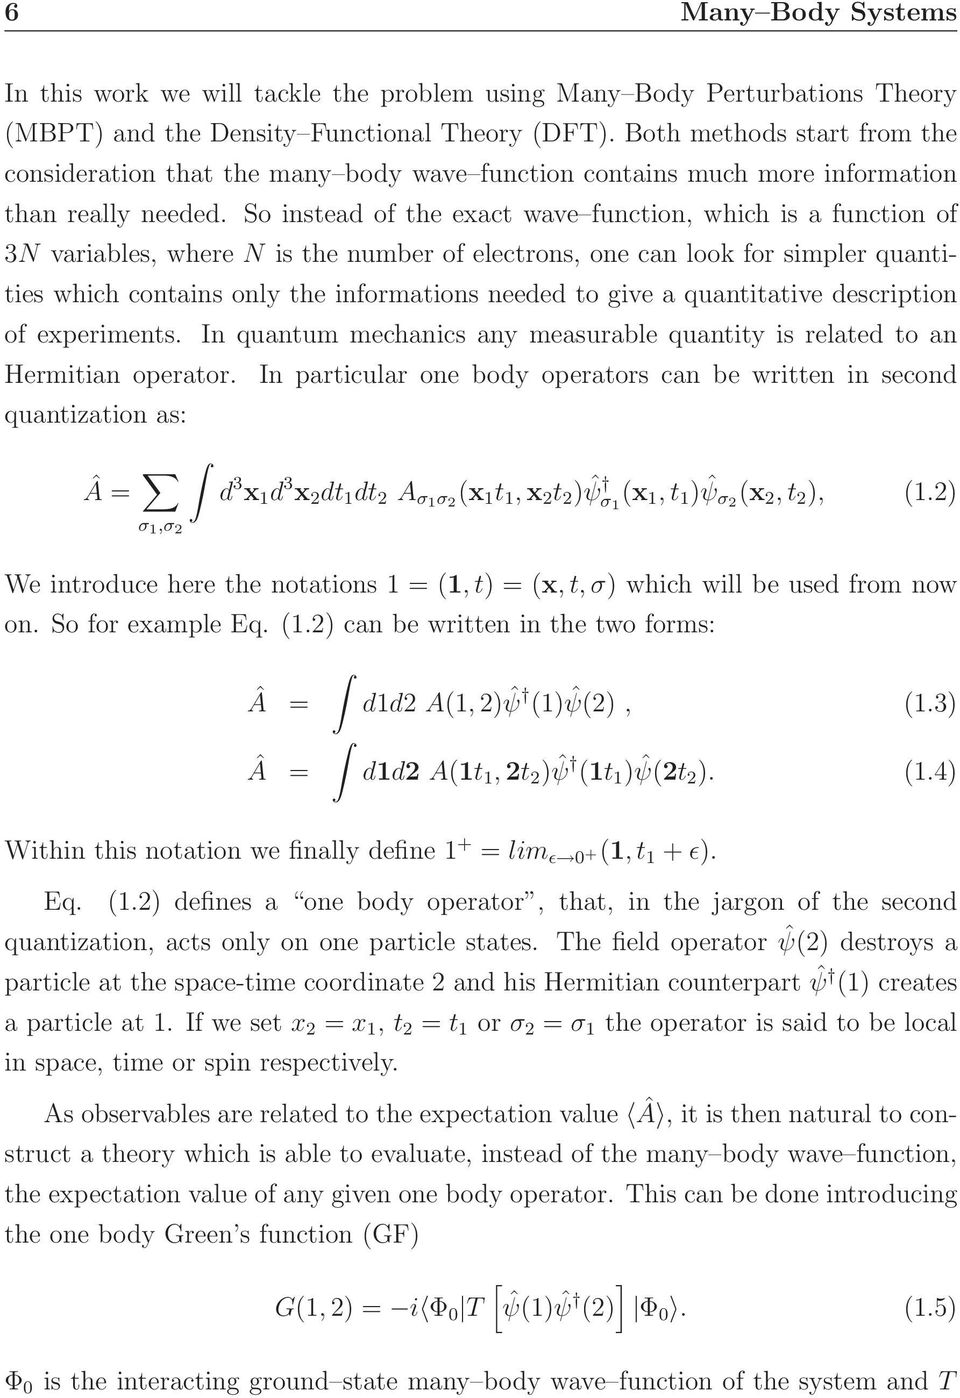 So instead of the exact wave function, which is a function of 3N variables, where N is the number of electrons, one can look for simpler quantities which contains only the informations needed to give